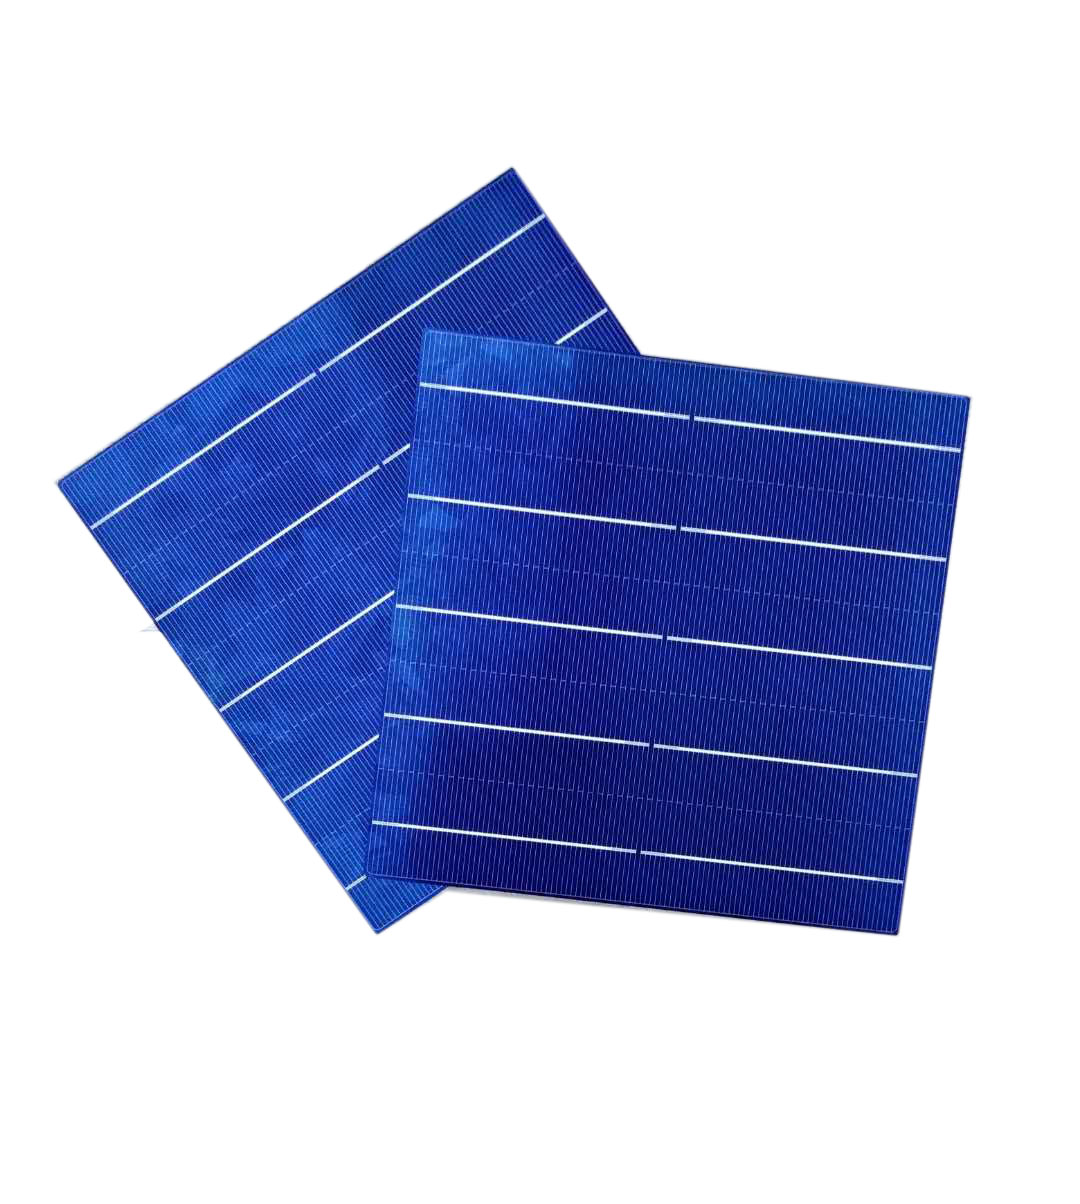 poly solar cell 156.75mm 5BB 17.6-18.6%